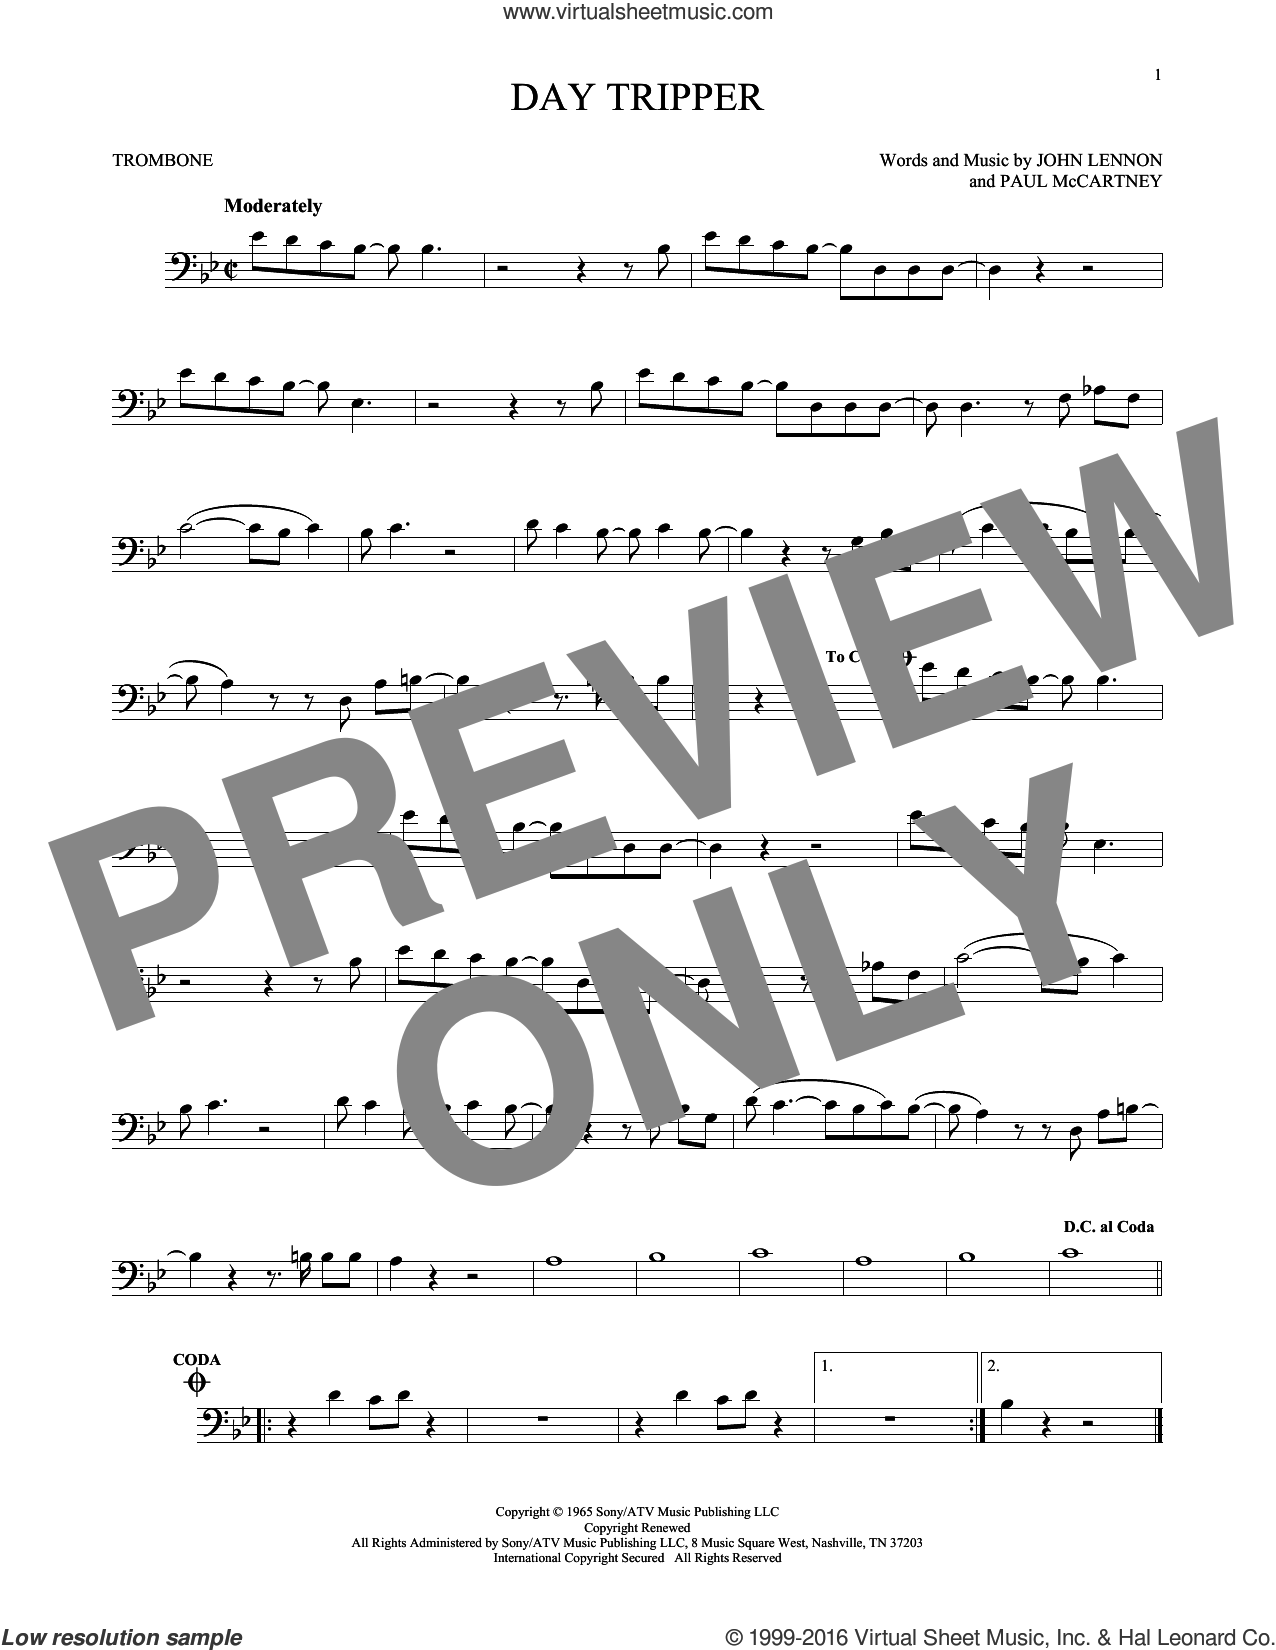 Day Tripper sheet music for trombone solo by The Beatles, John Lennon and Paul McCartney, intermediate skill level